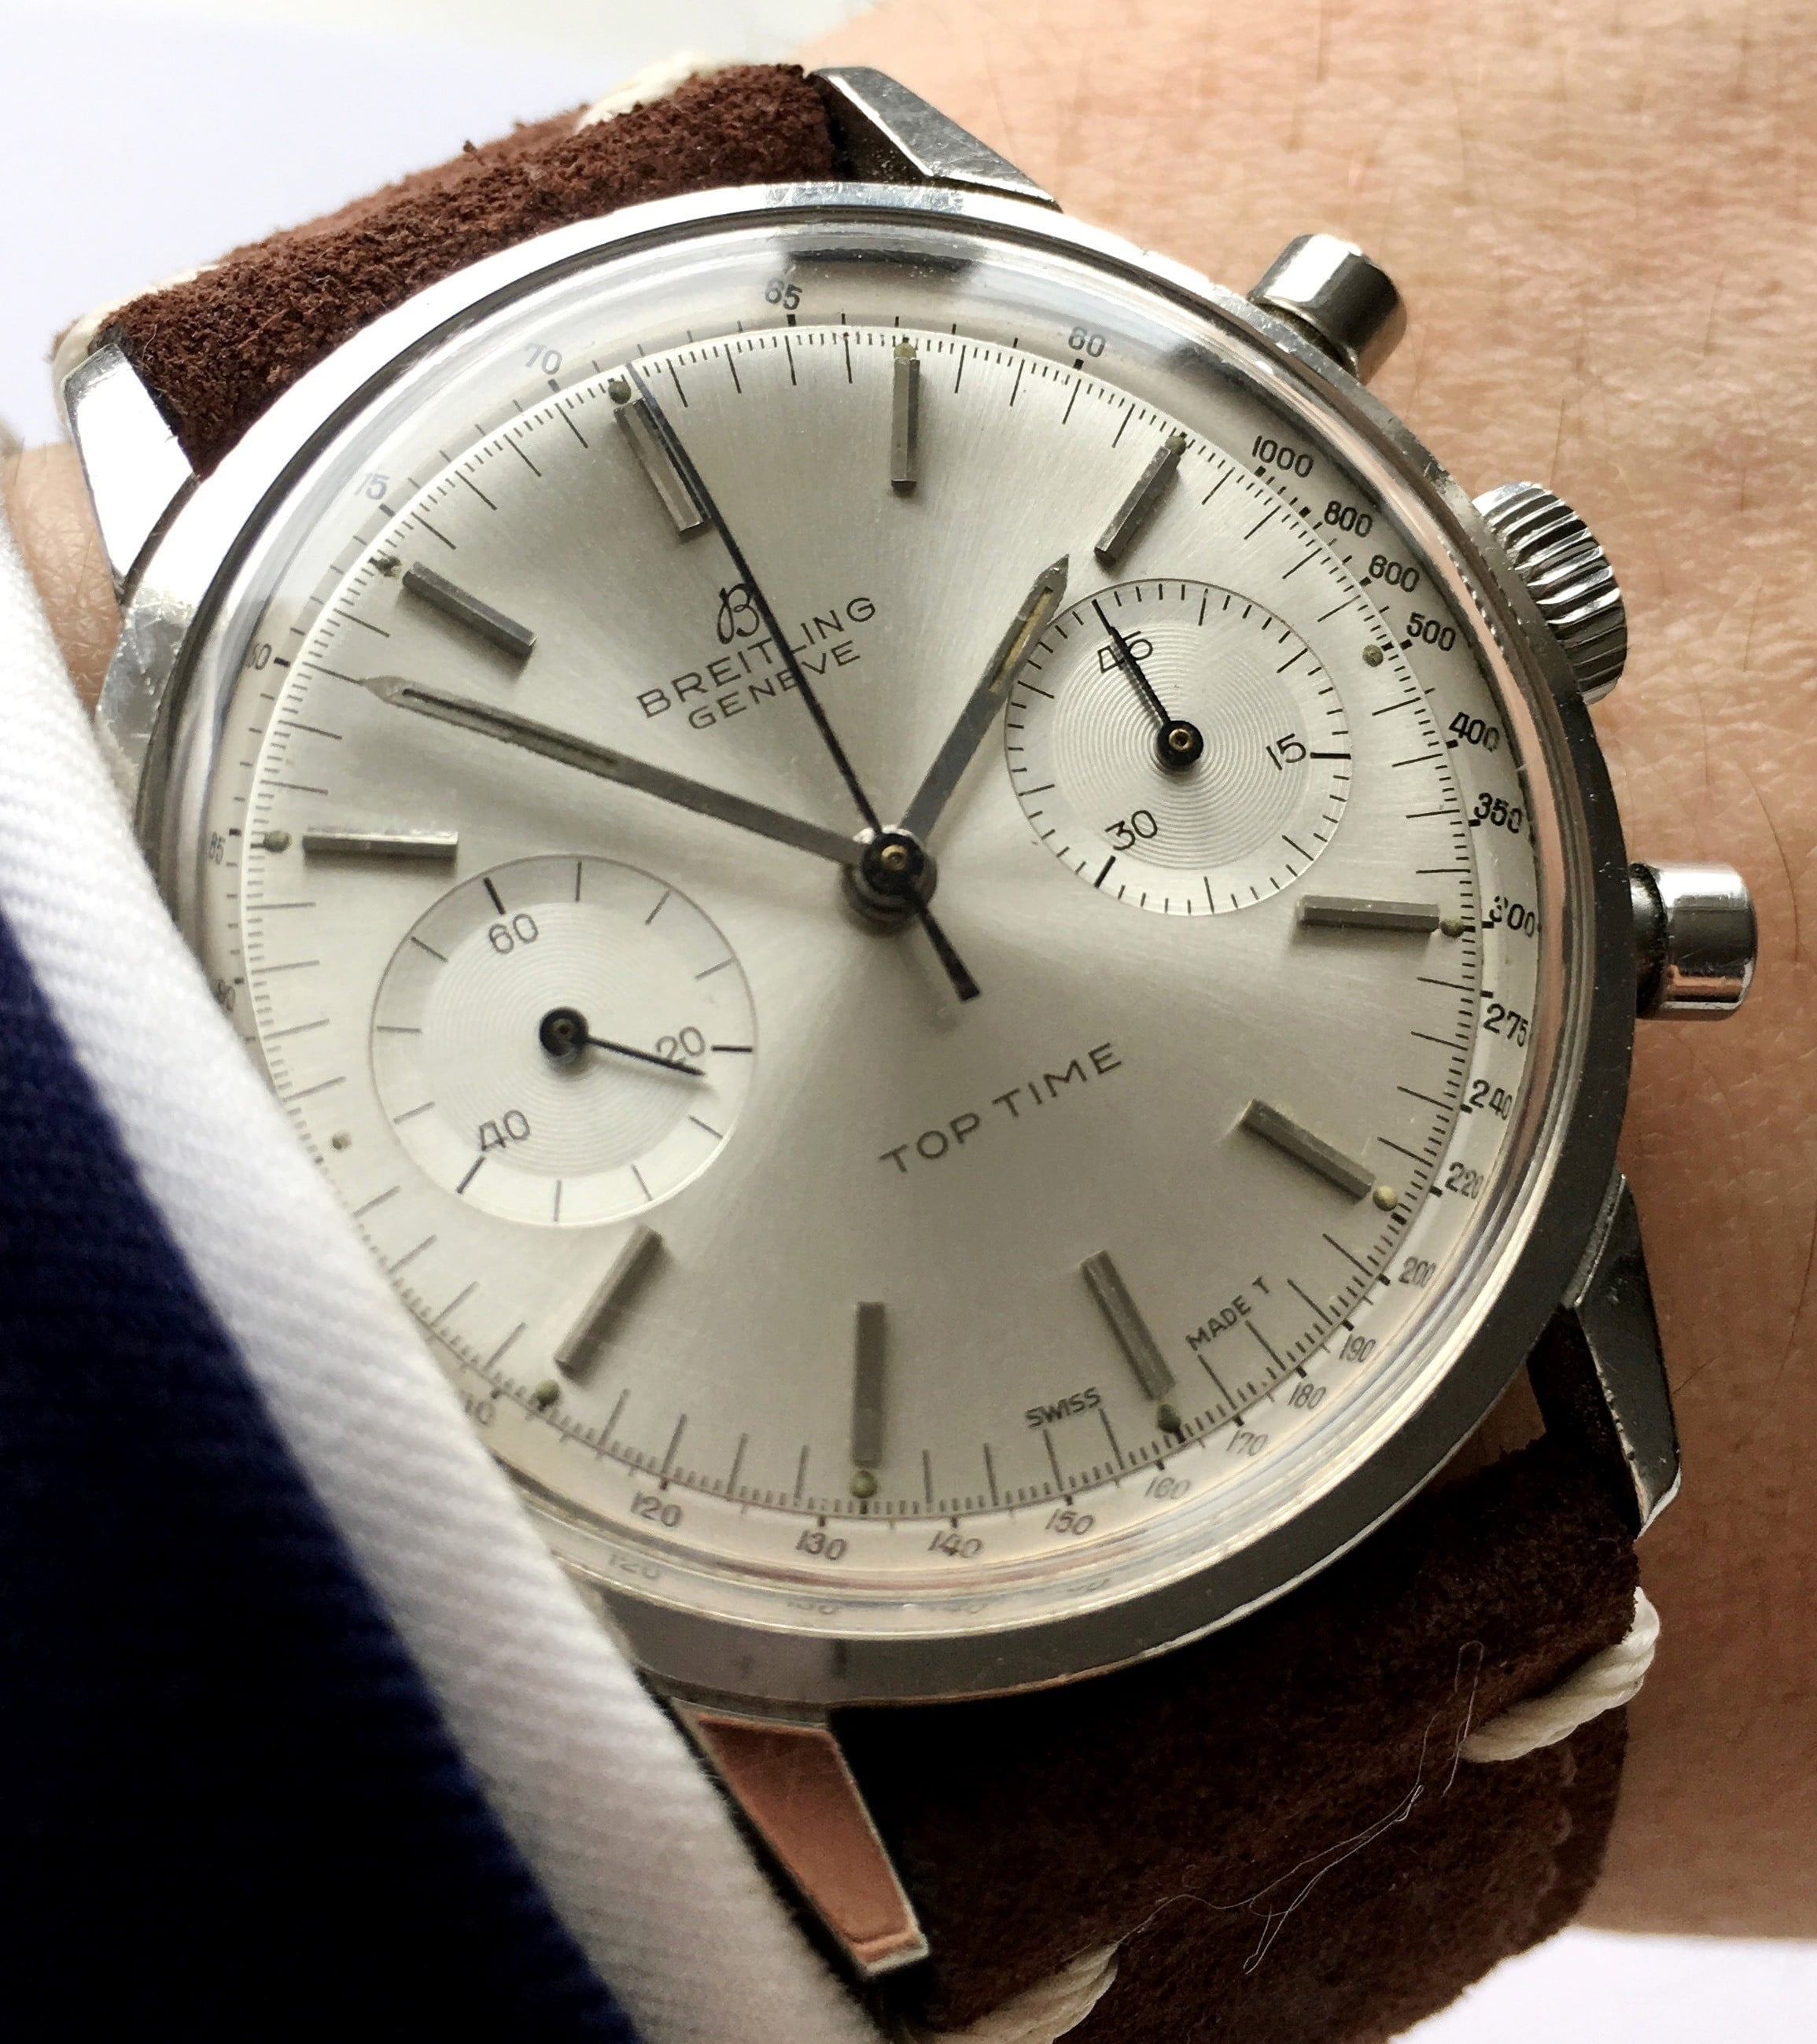 Breitling-Top-Time-Chronograph-y1585-1.j